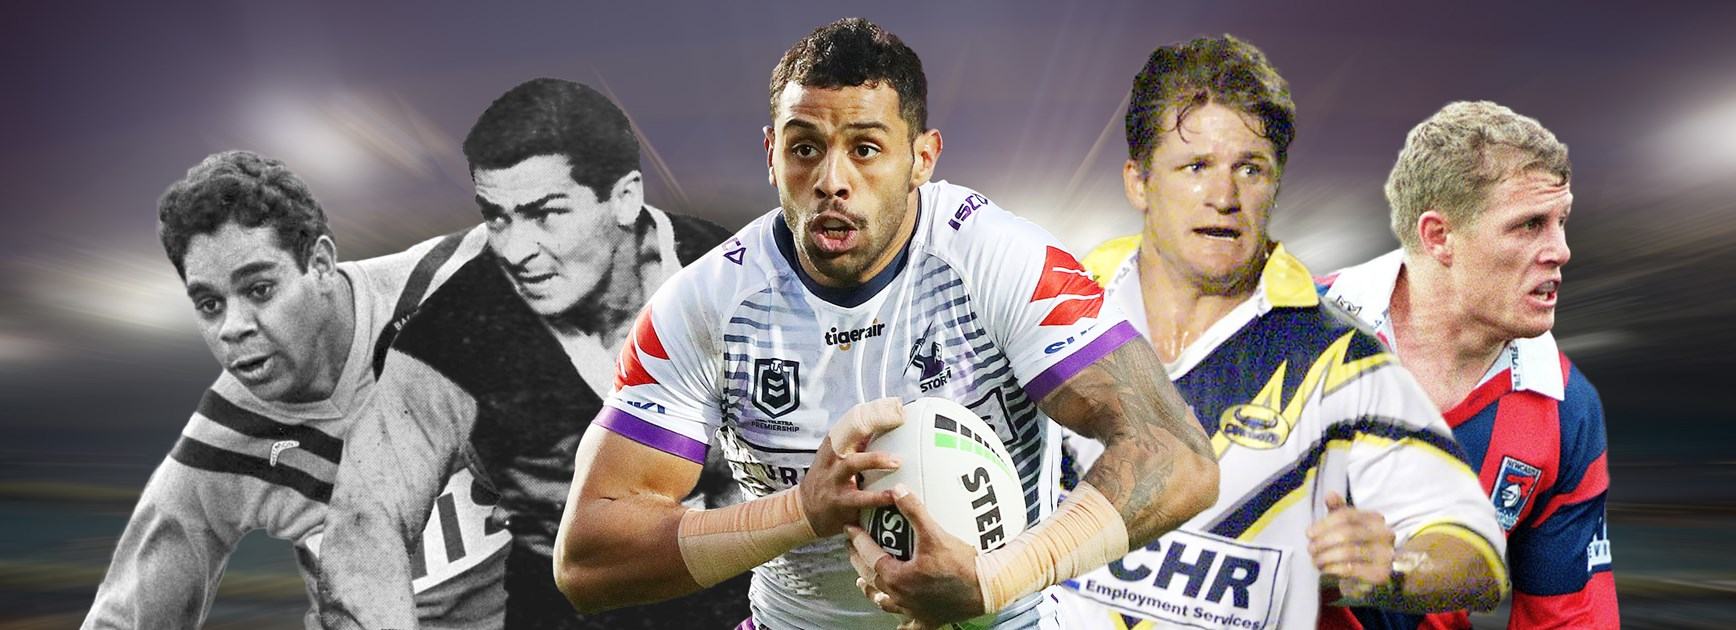 Rugby league's fastest of all time: Addo-Carr blitzes field